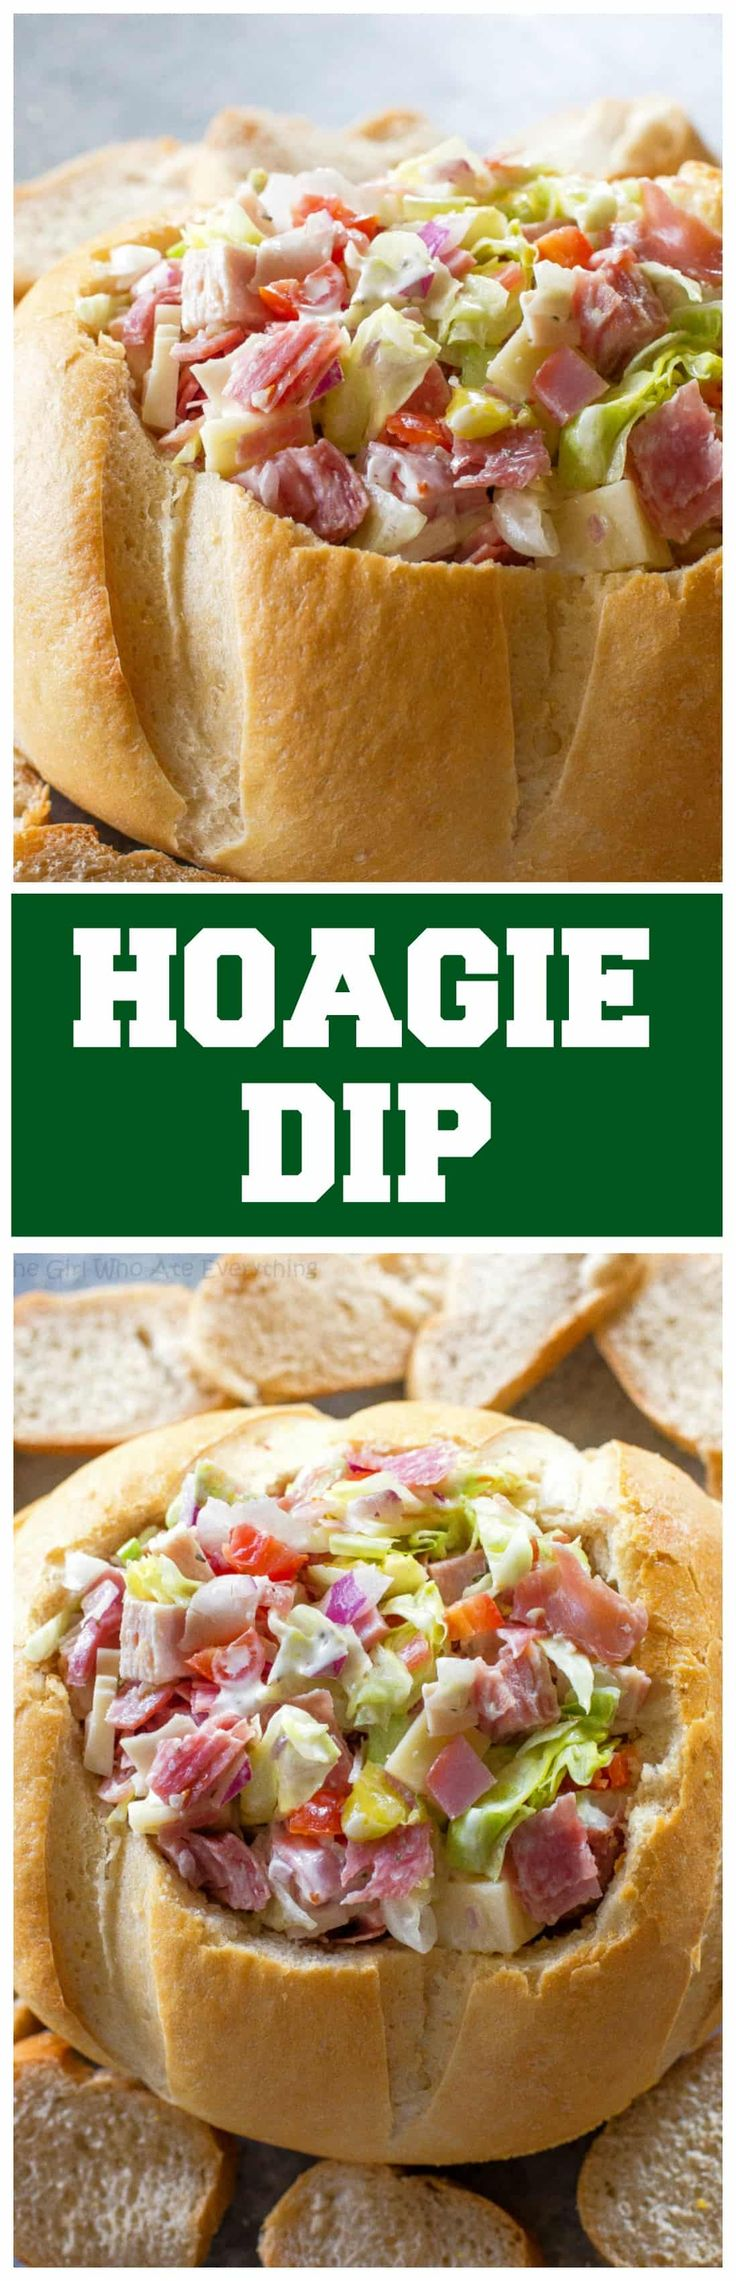 This Hoagie Diprecipe tastes just like a sub sandwich from Subway but in dip form. This appetizer should really be called Hoagie Spread because the best way to eat it is to spoon it on top of slices of bread.